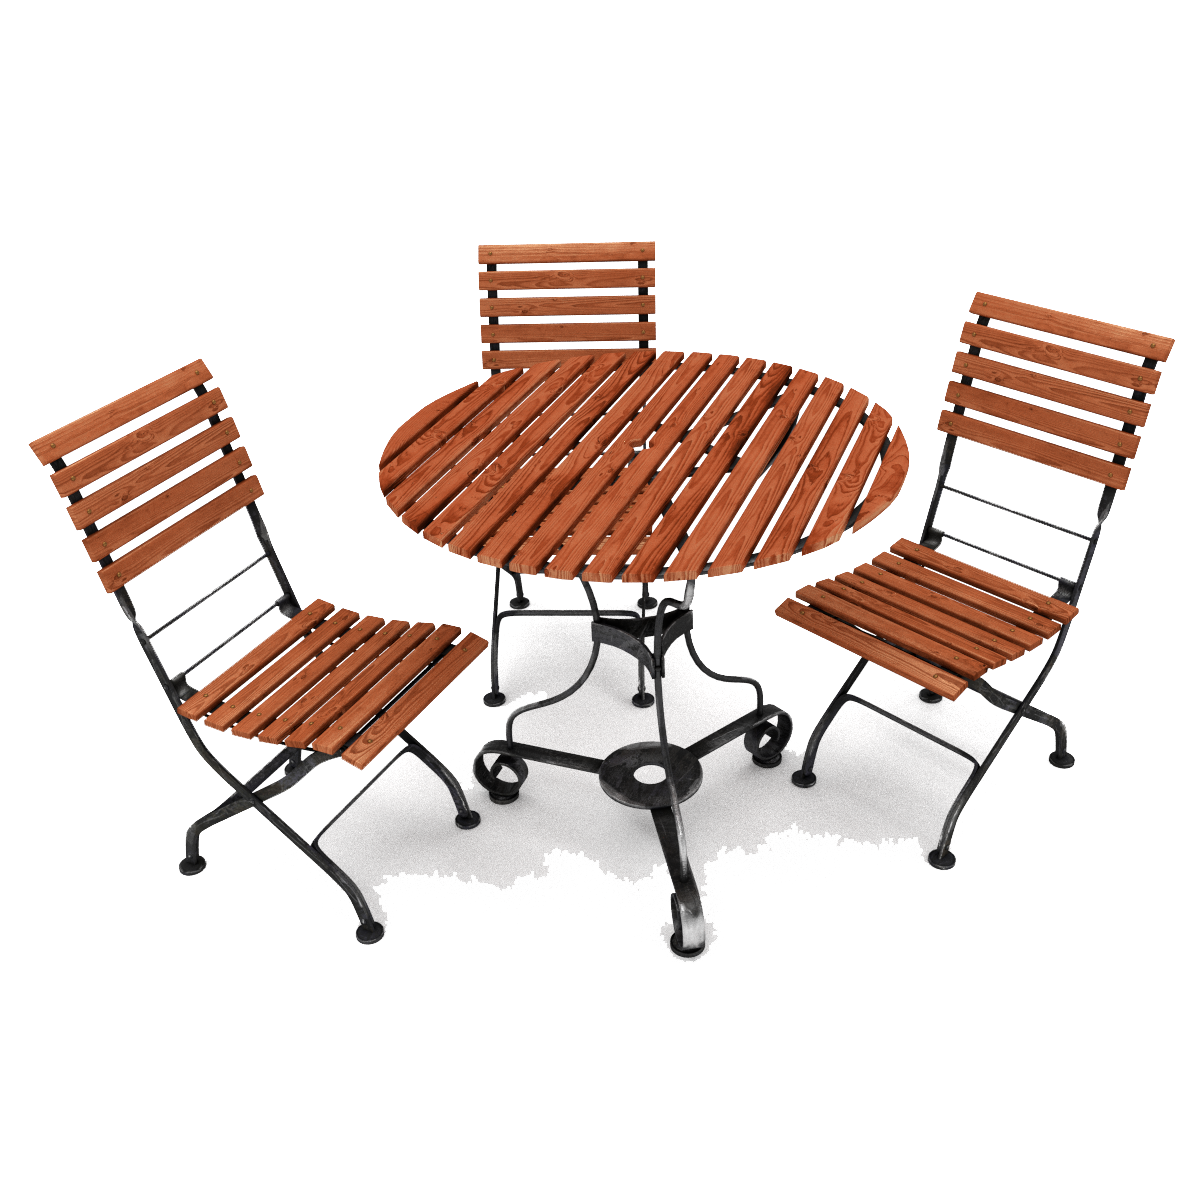 Outdoor Furniture File PNG Image